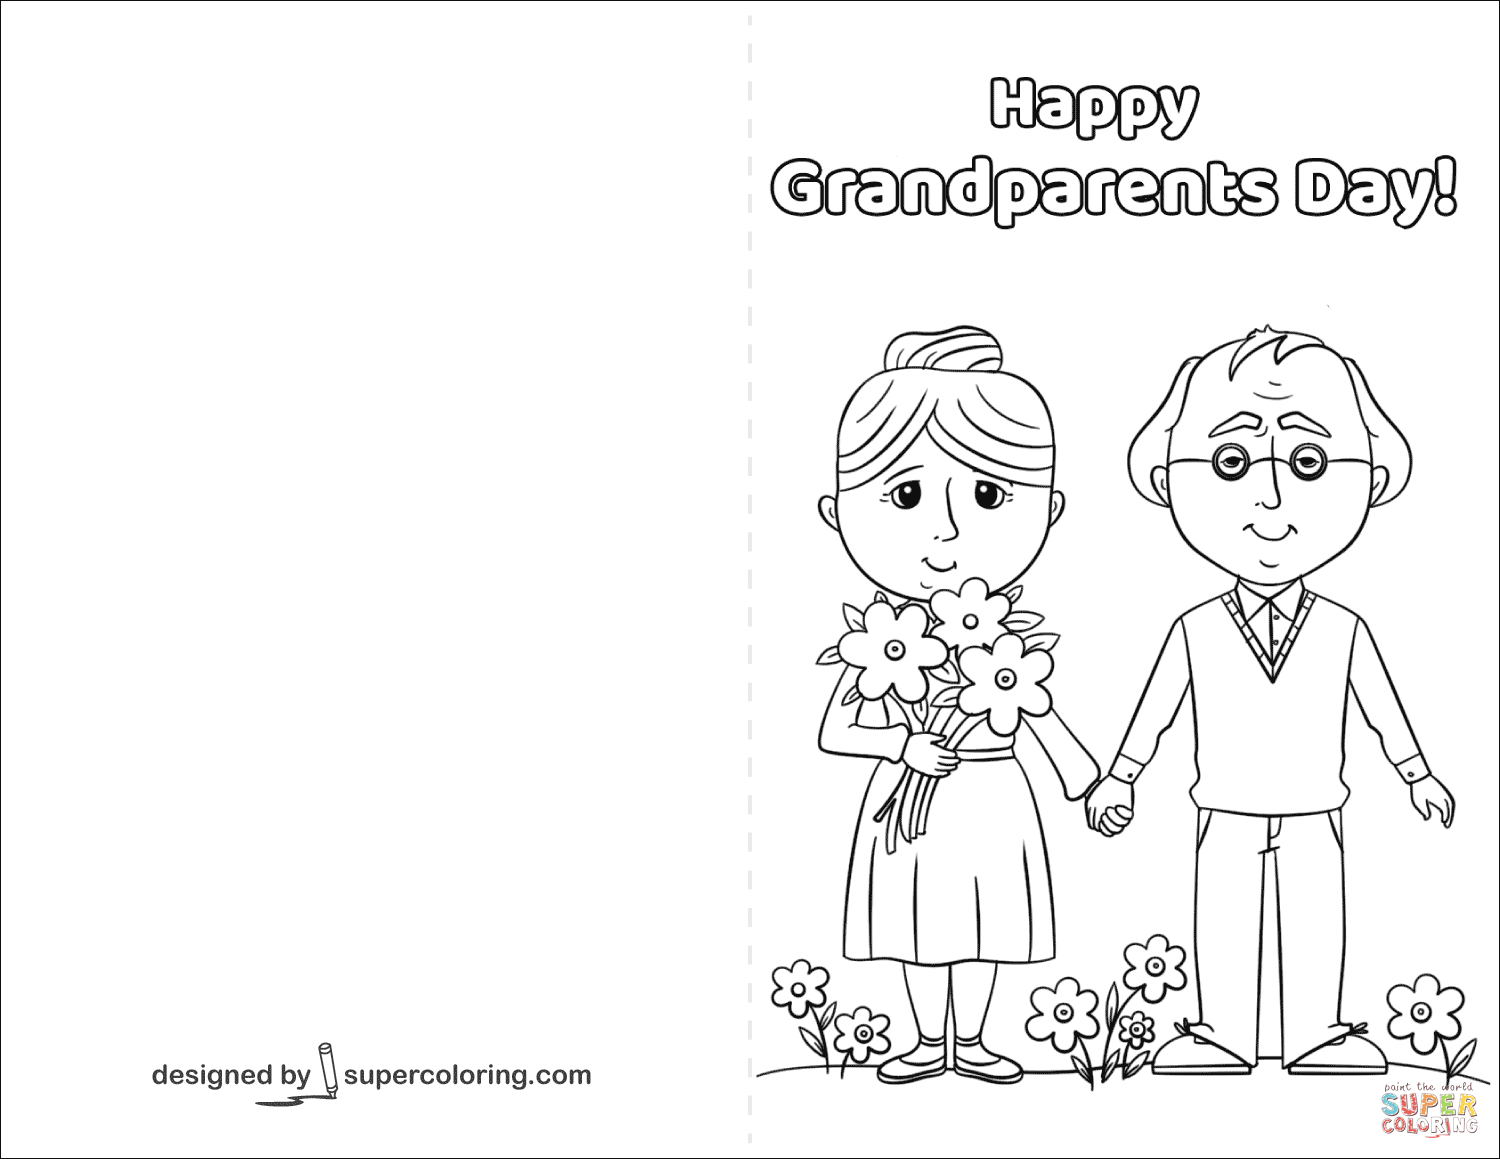 Happy Grandparents Day Card Coloring Page | Free Printable Coloring - Grandparents Day Cards Printable Free